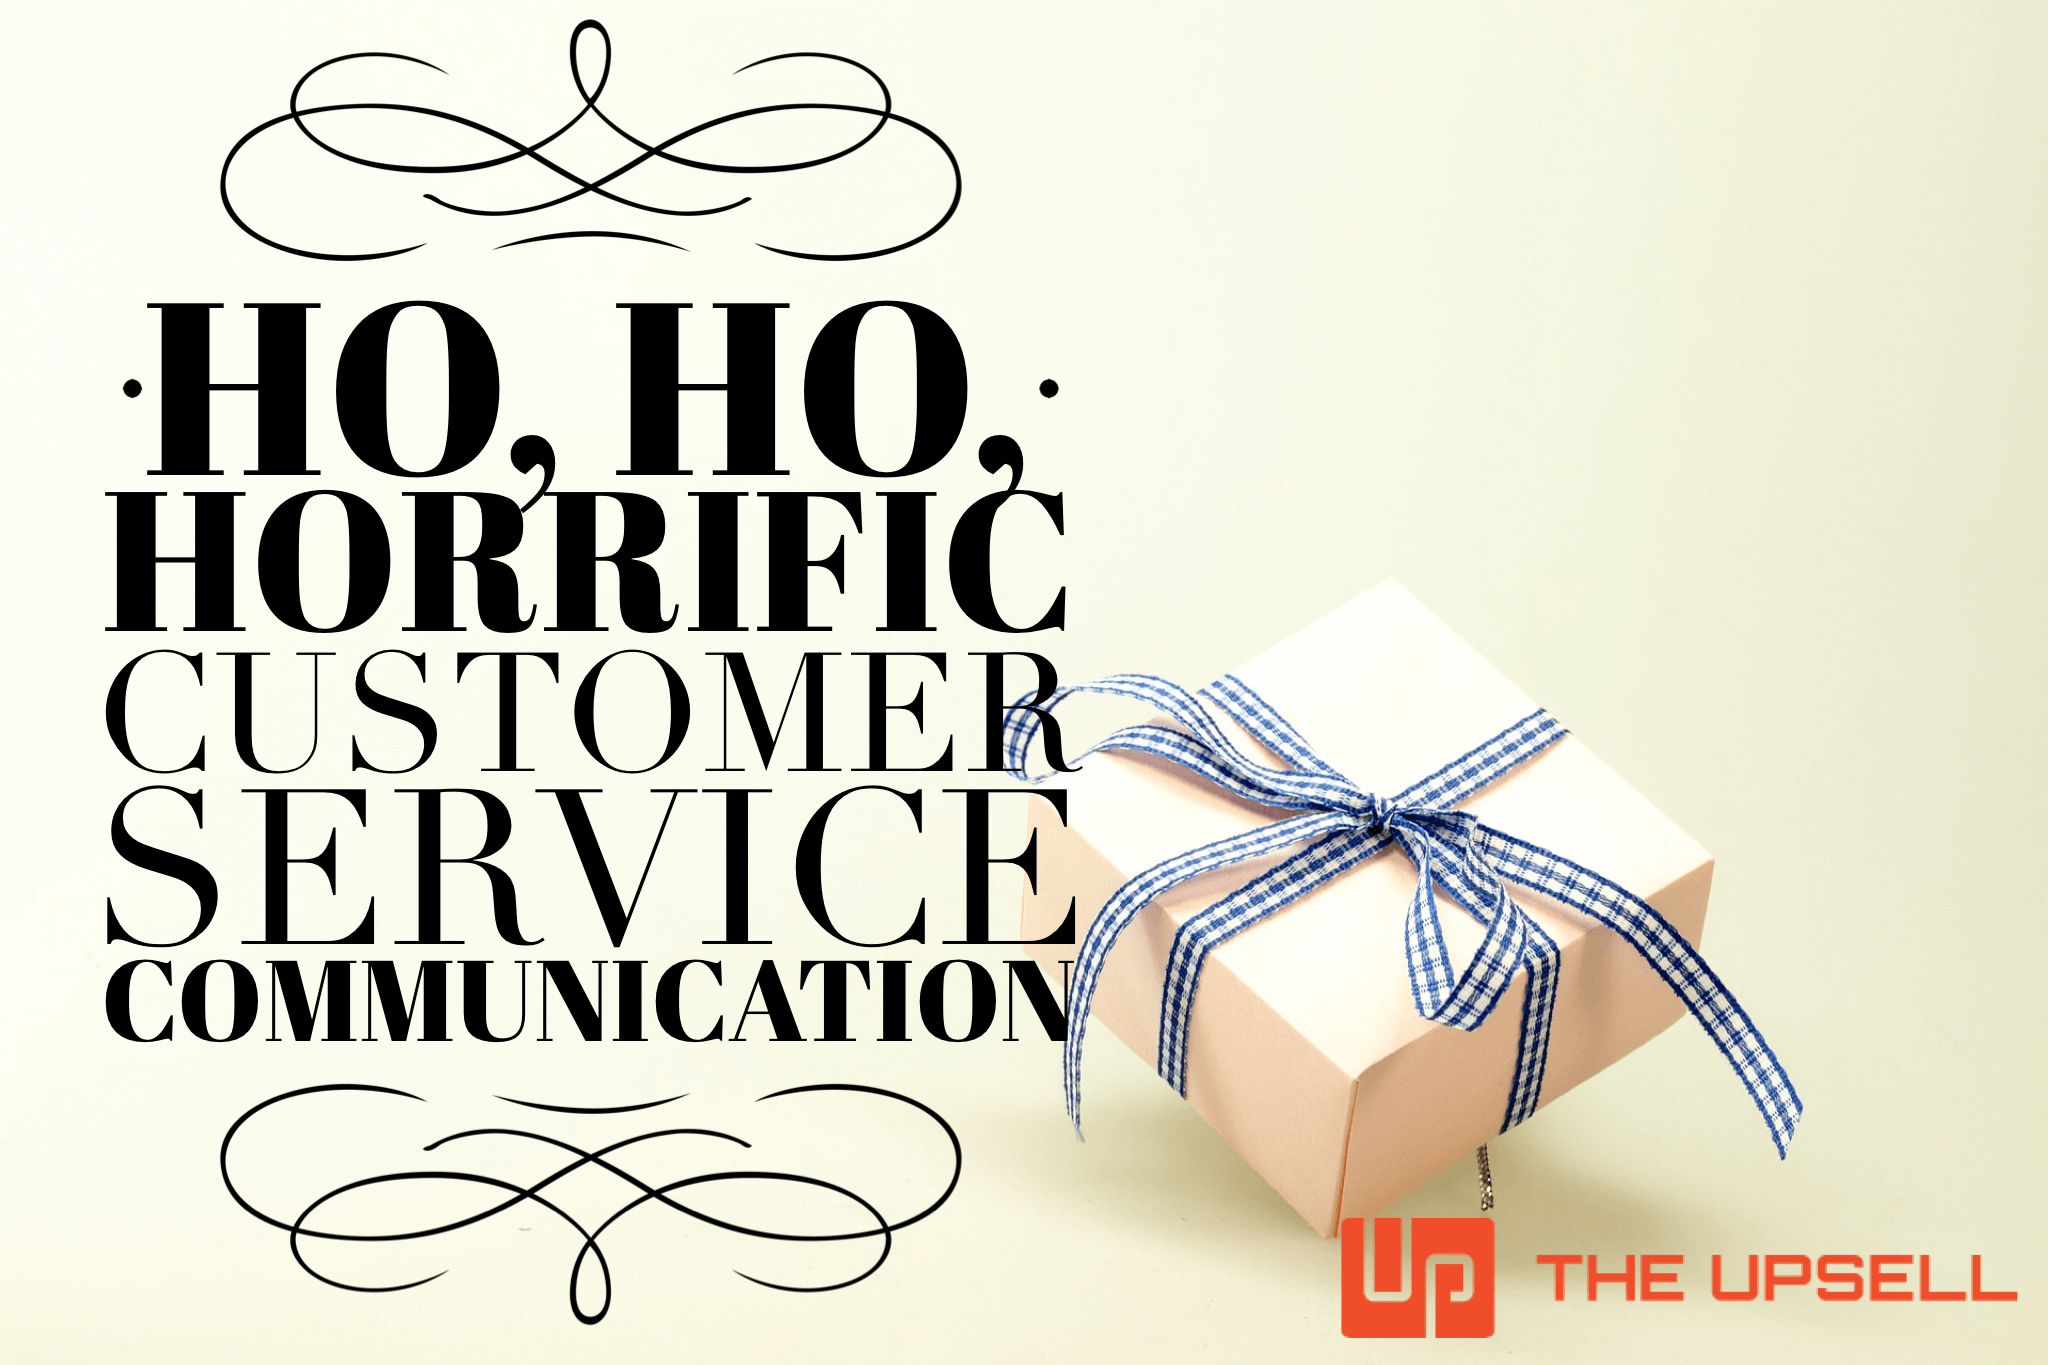 customer service communication